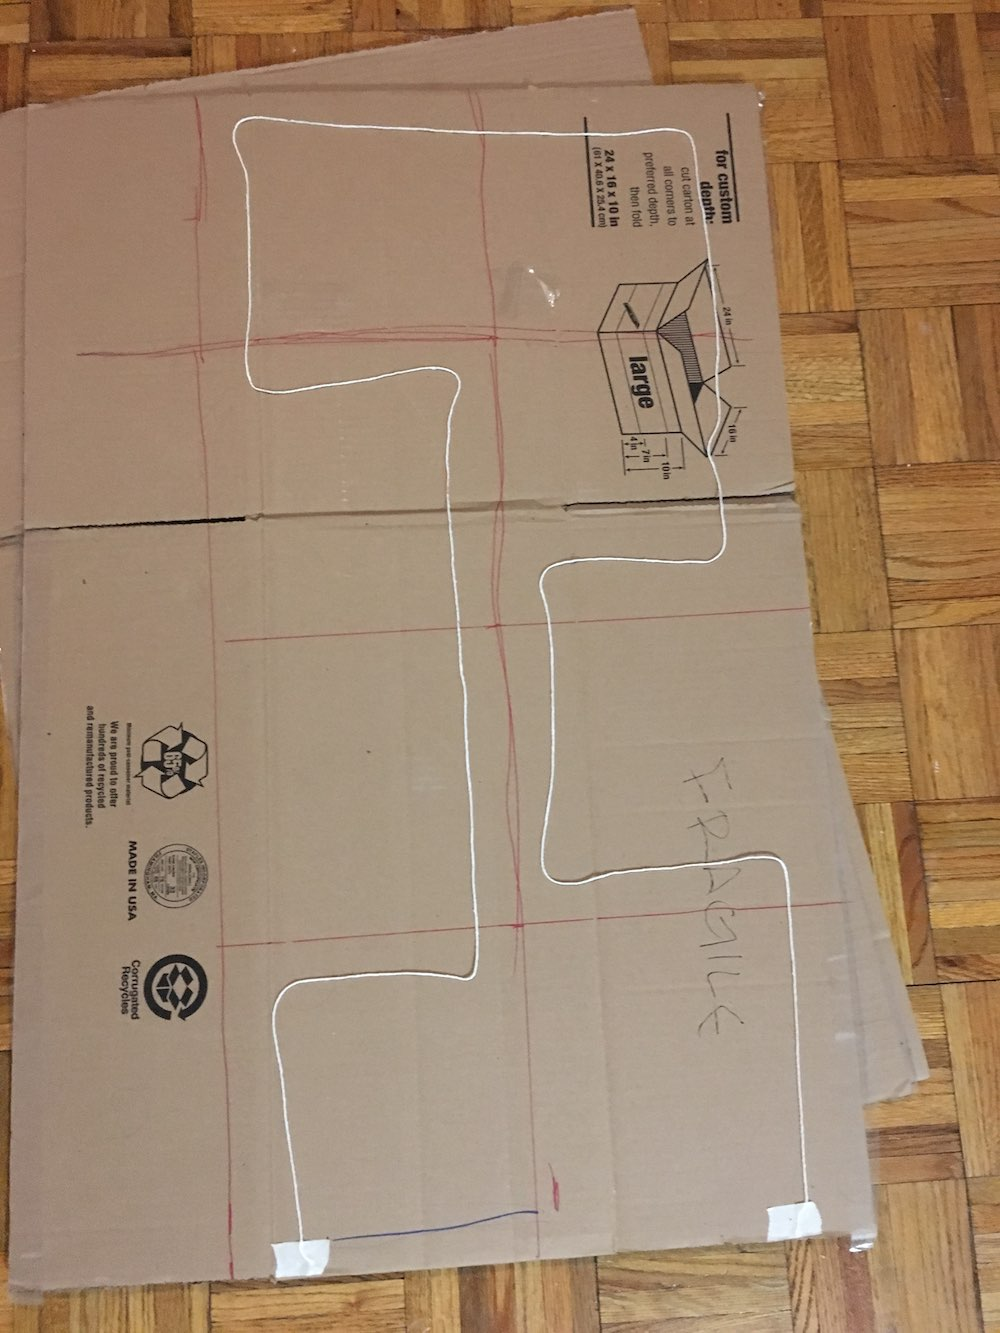 String laid out on cardboard in the shape of a path